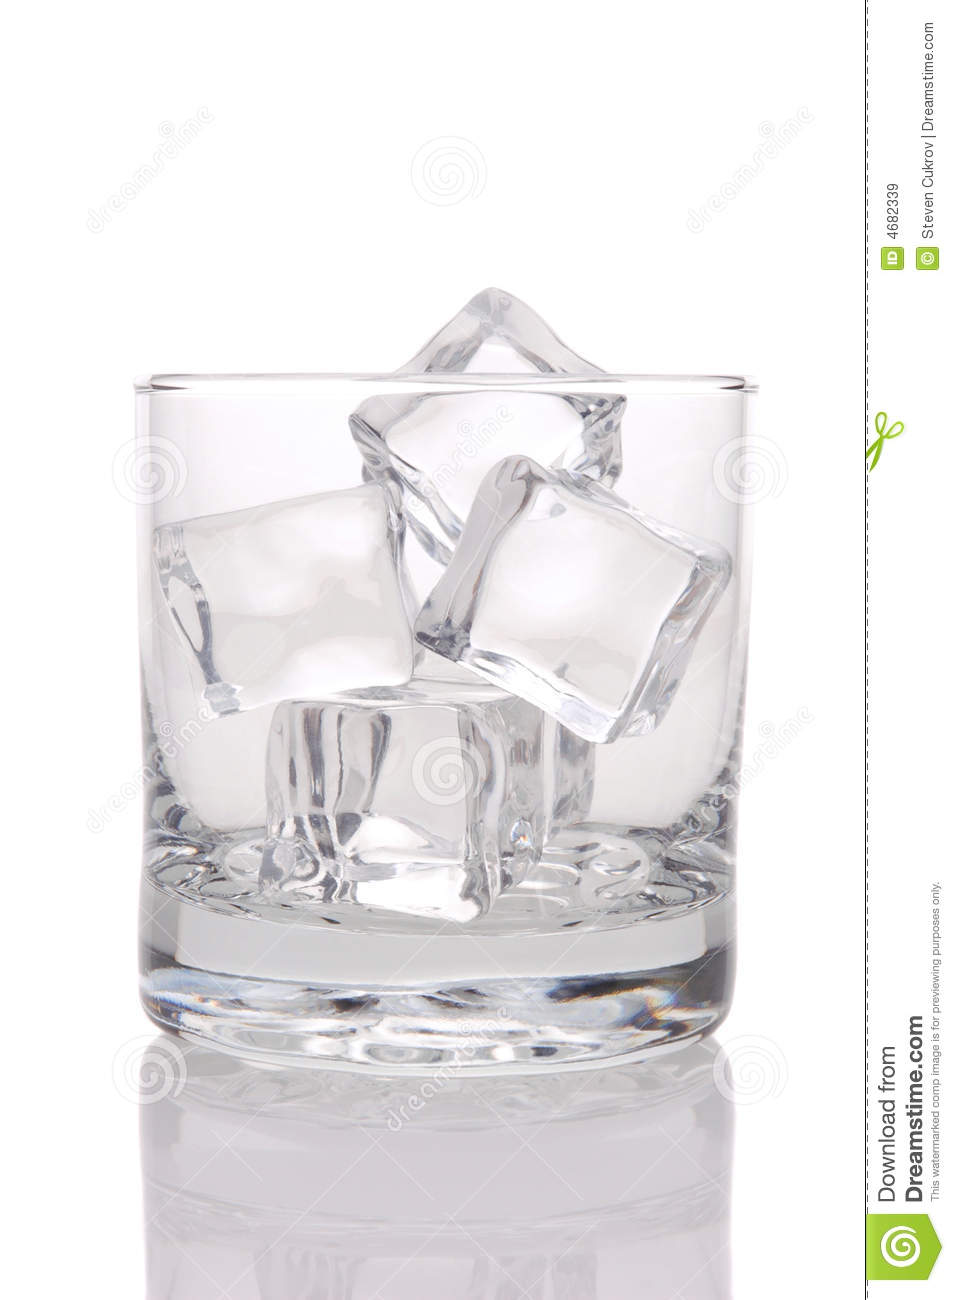 Glass Of Ice Cubes Royalty Free Stock Images - Image: 4682339